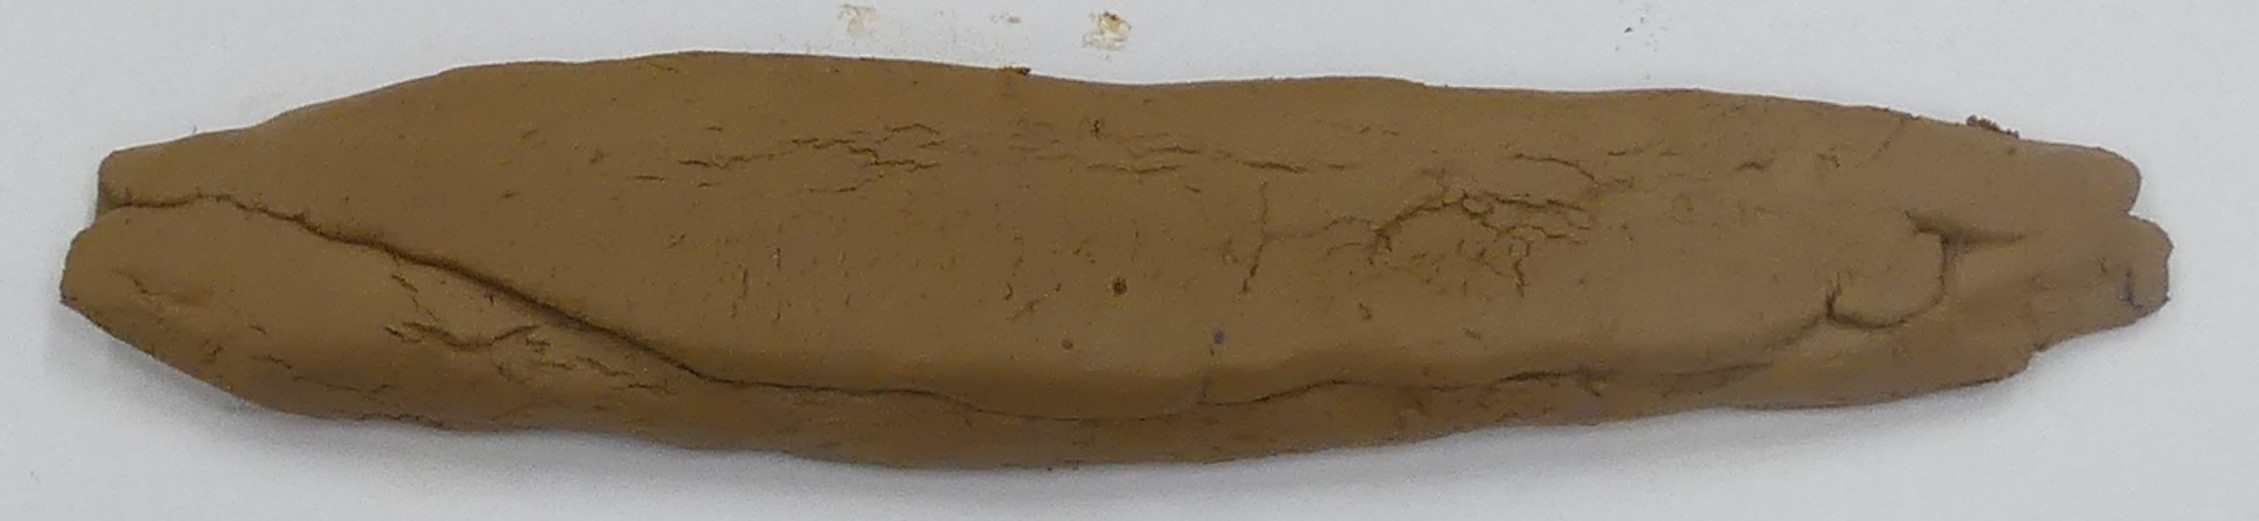 Back of long thin clay tablet with slightly tapering edges, showing irregular line where folded clay has been joined